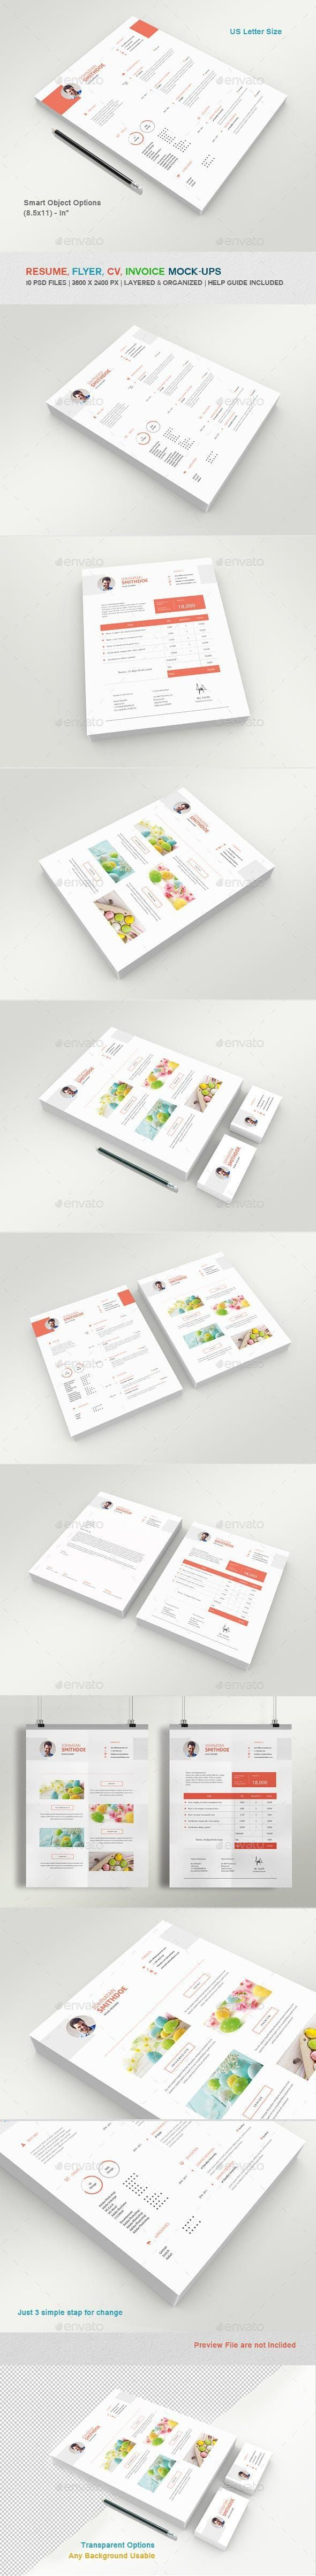 Resume Flyer Invoice And Letterhead Mockups template